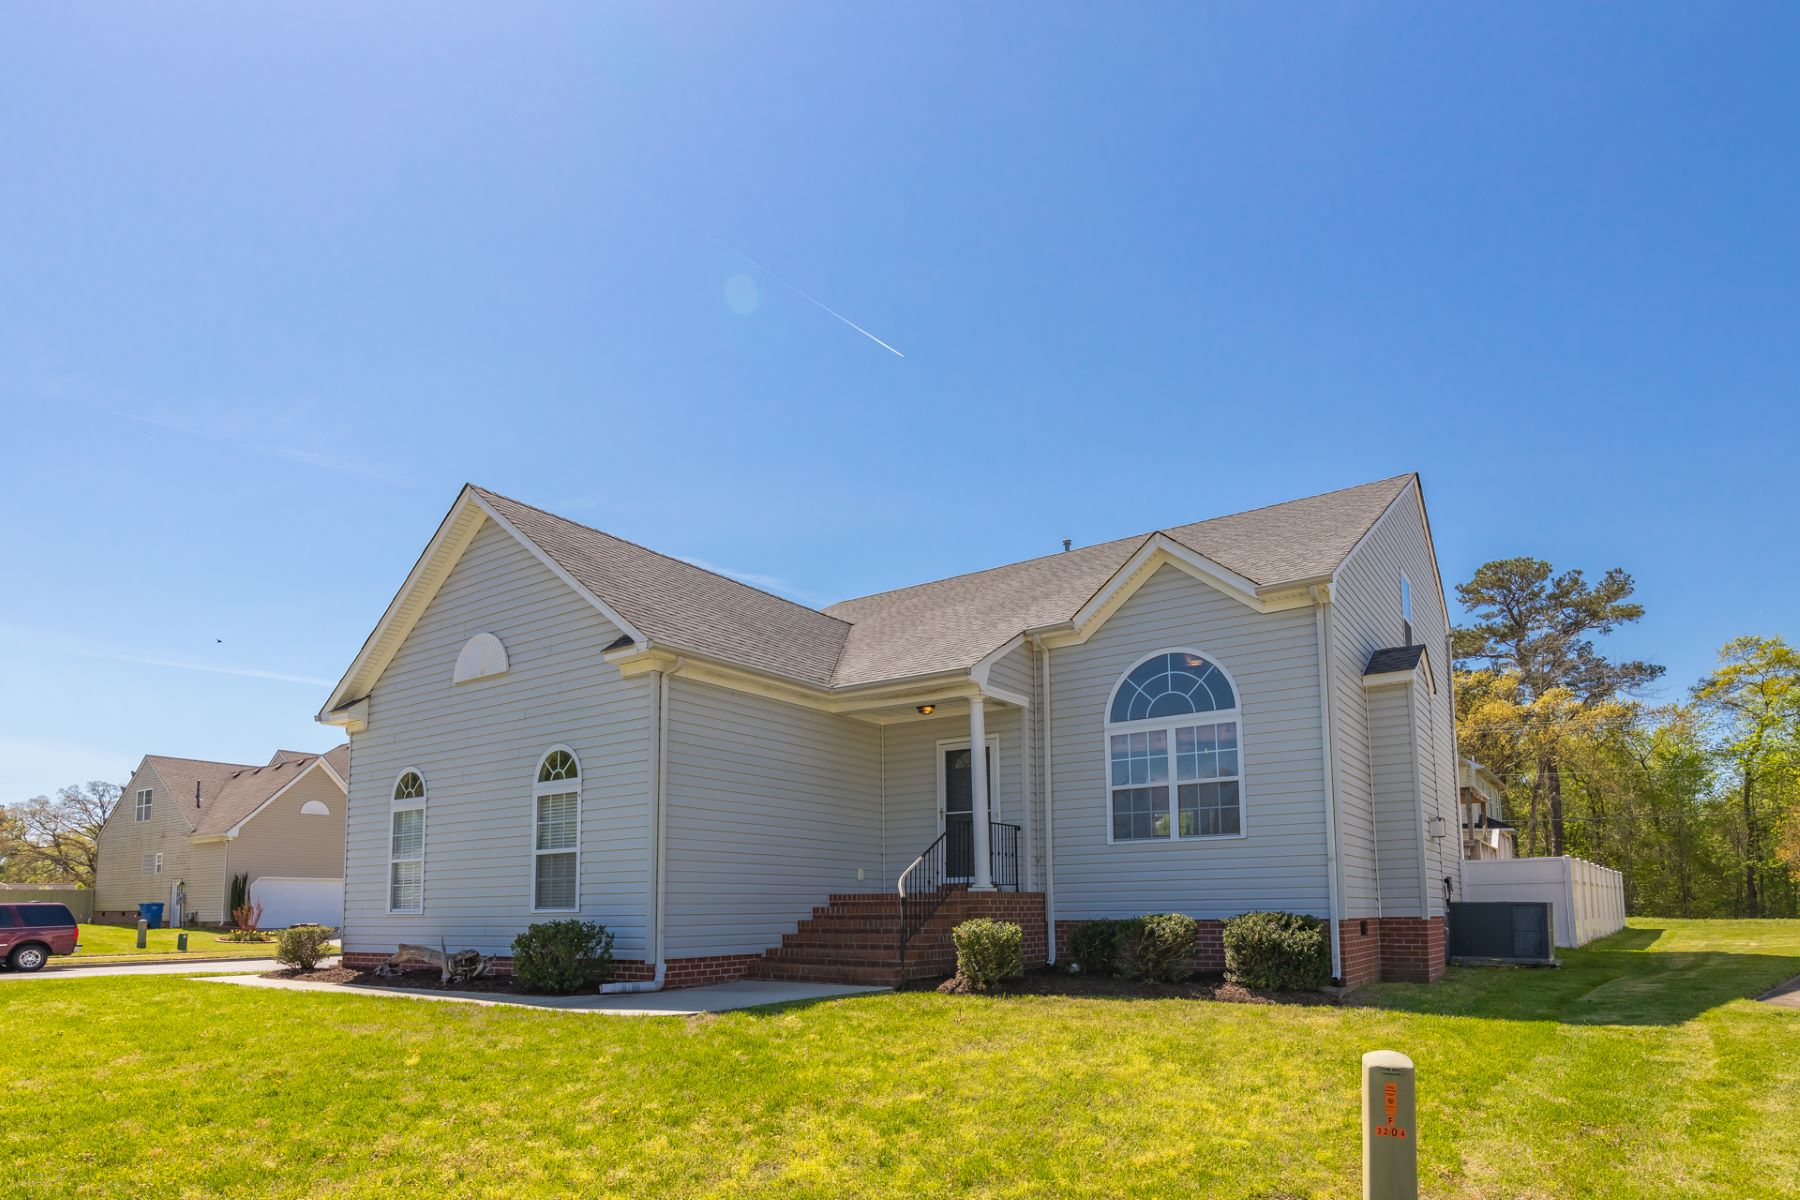 Single Family Home for Sale at KINGS GATE 3200 Honey Flower Court Chesapeake, Virginia 23323 United States